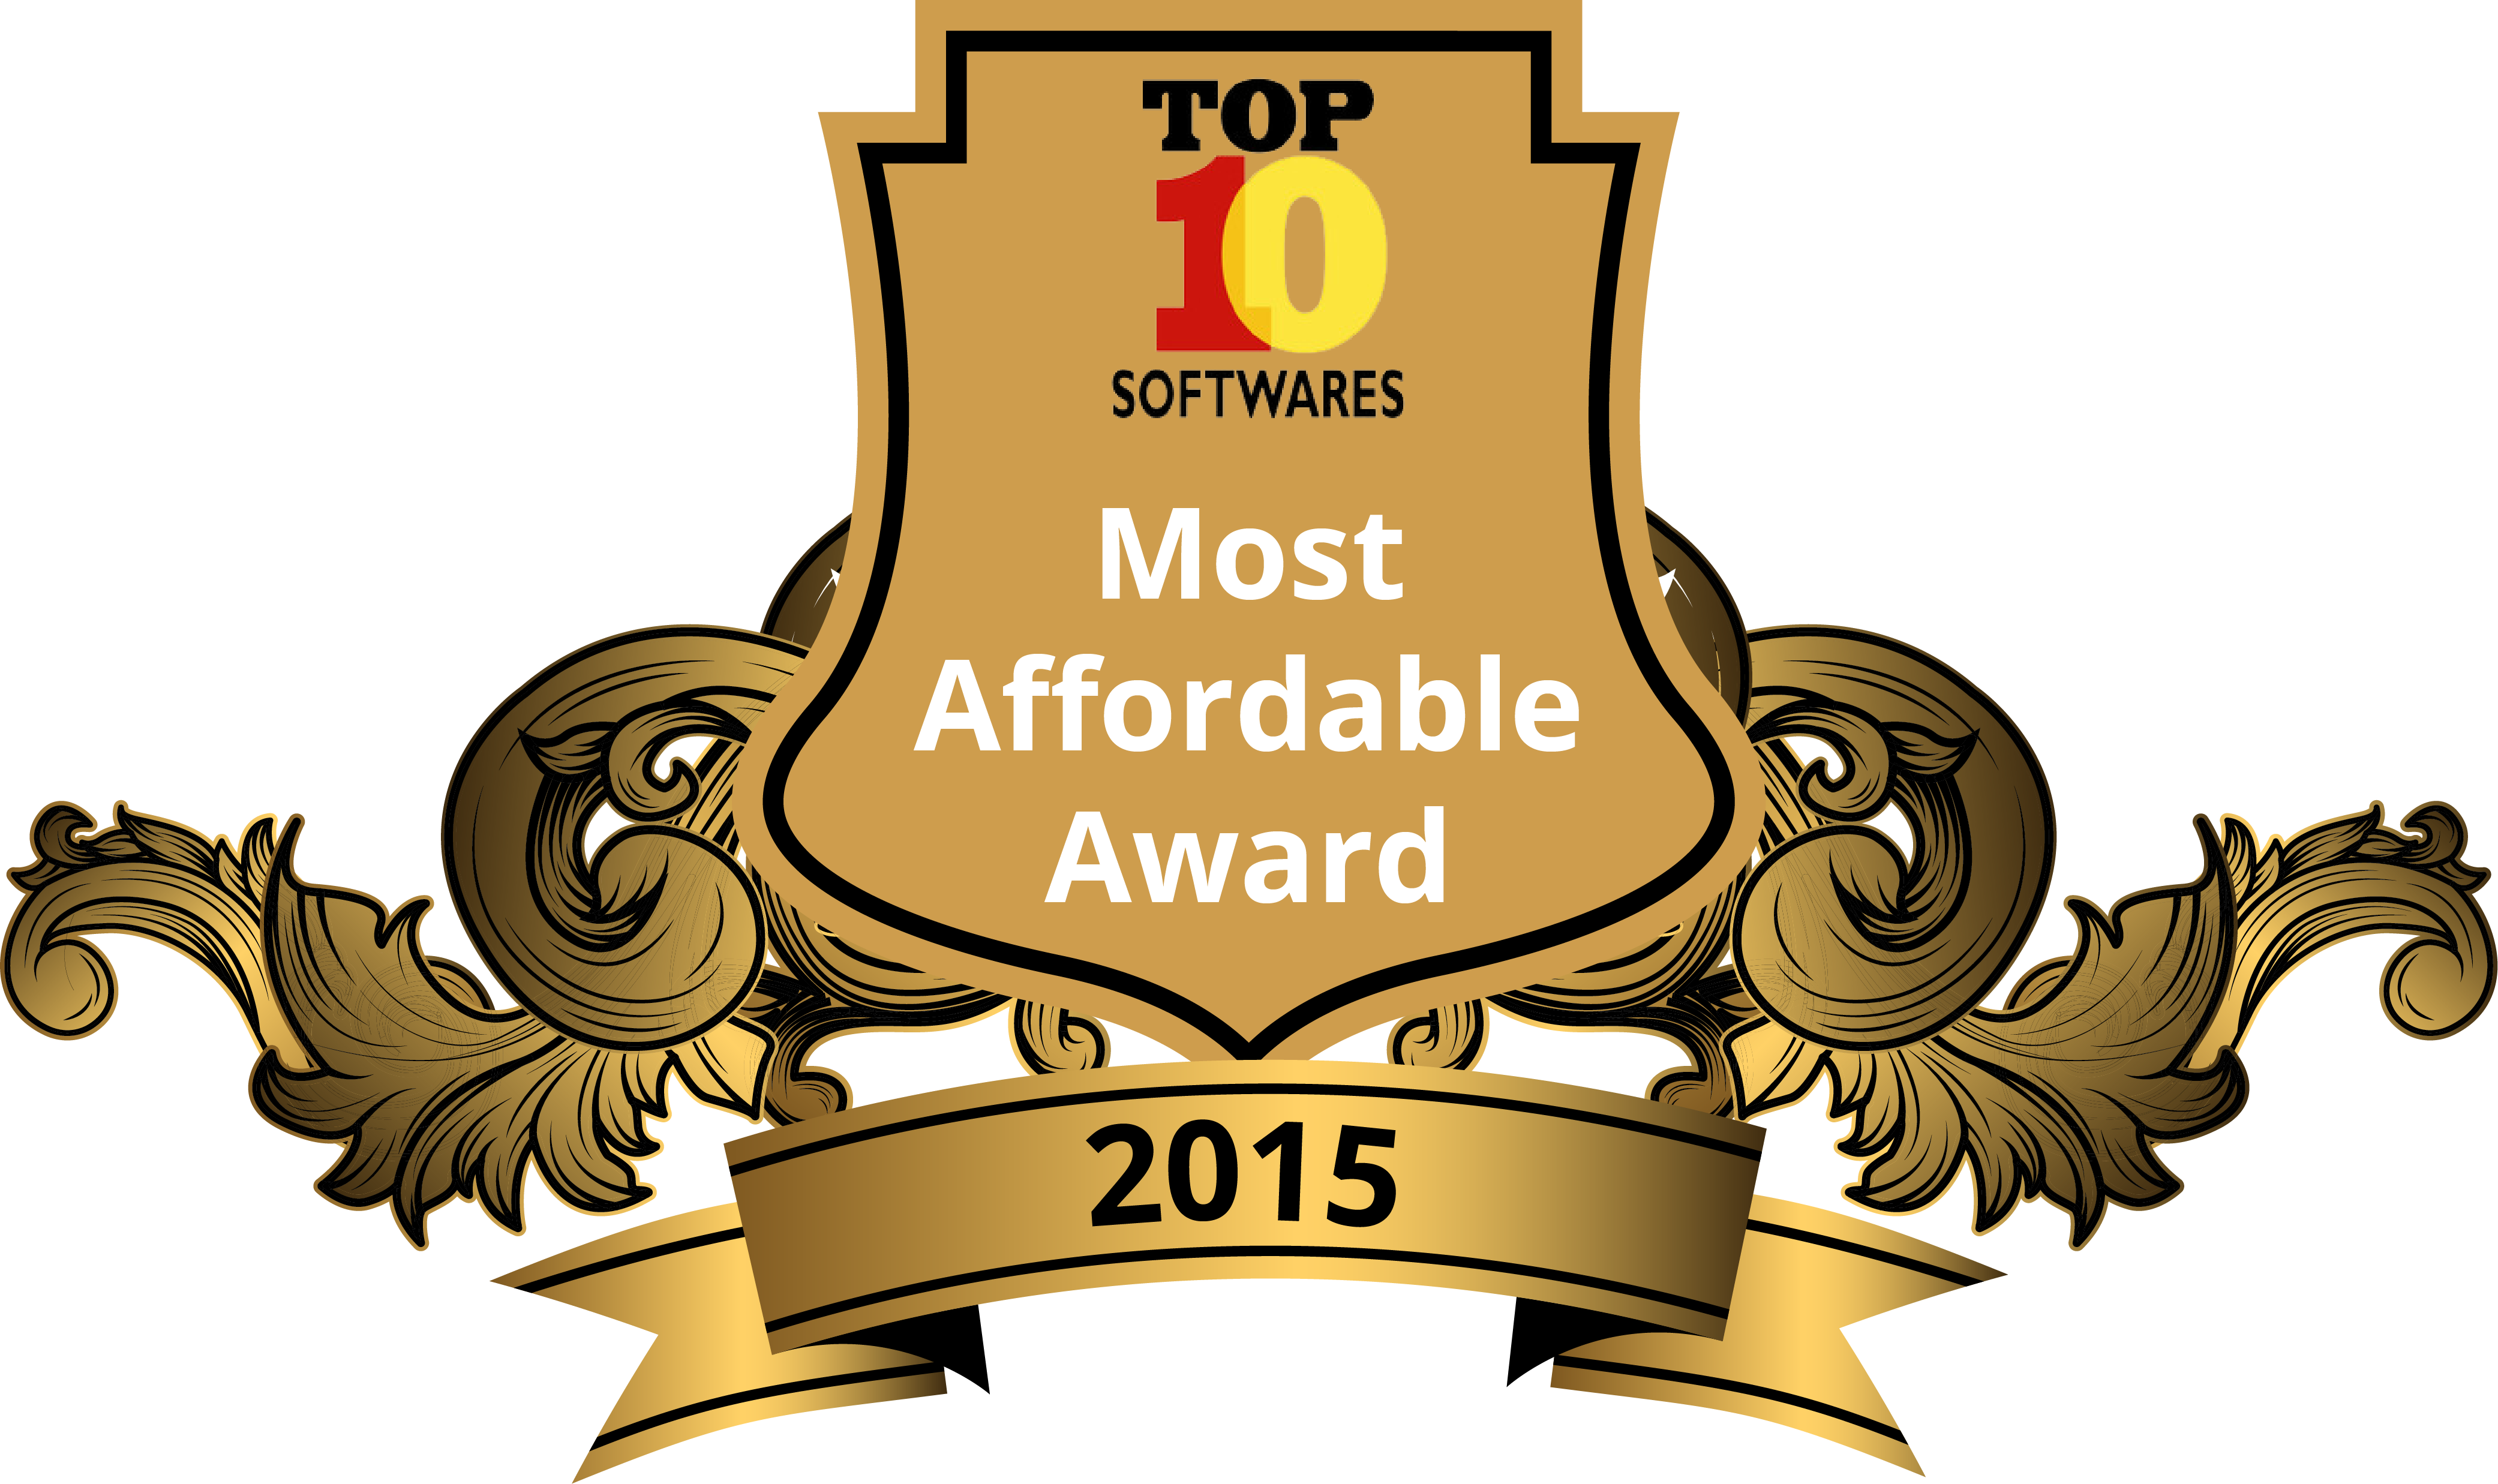 Top10 Most Affordable